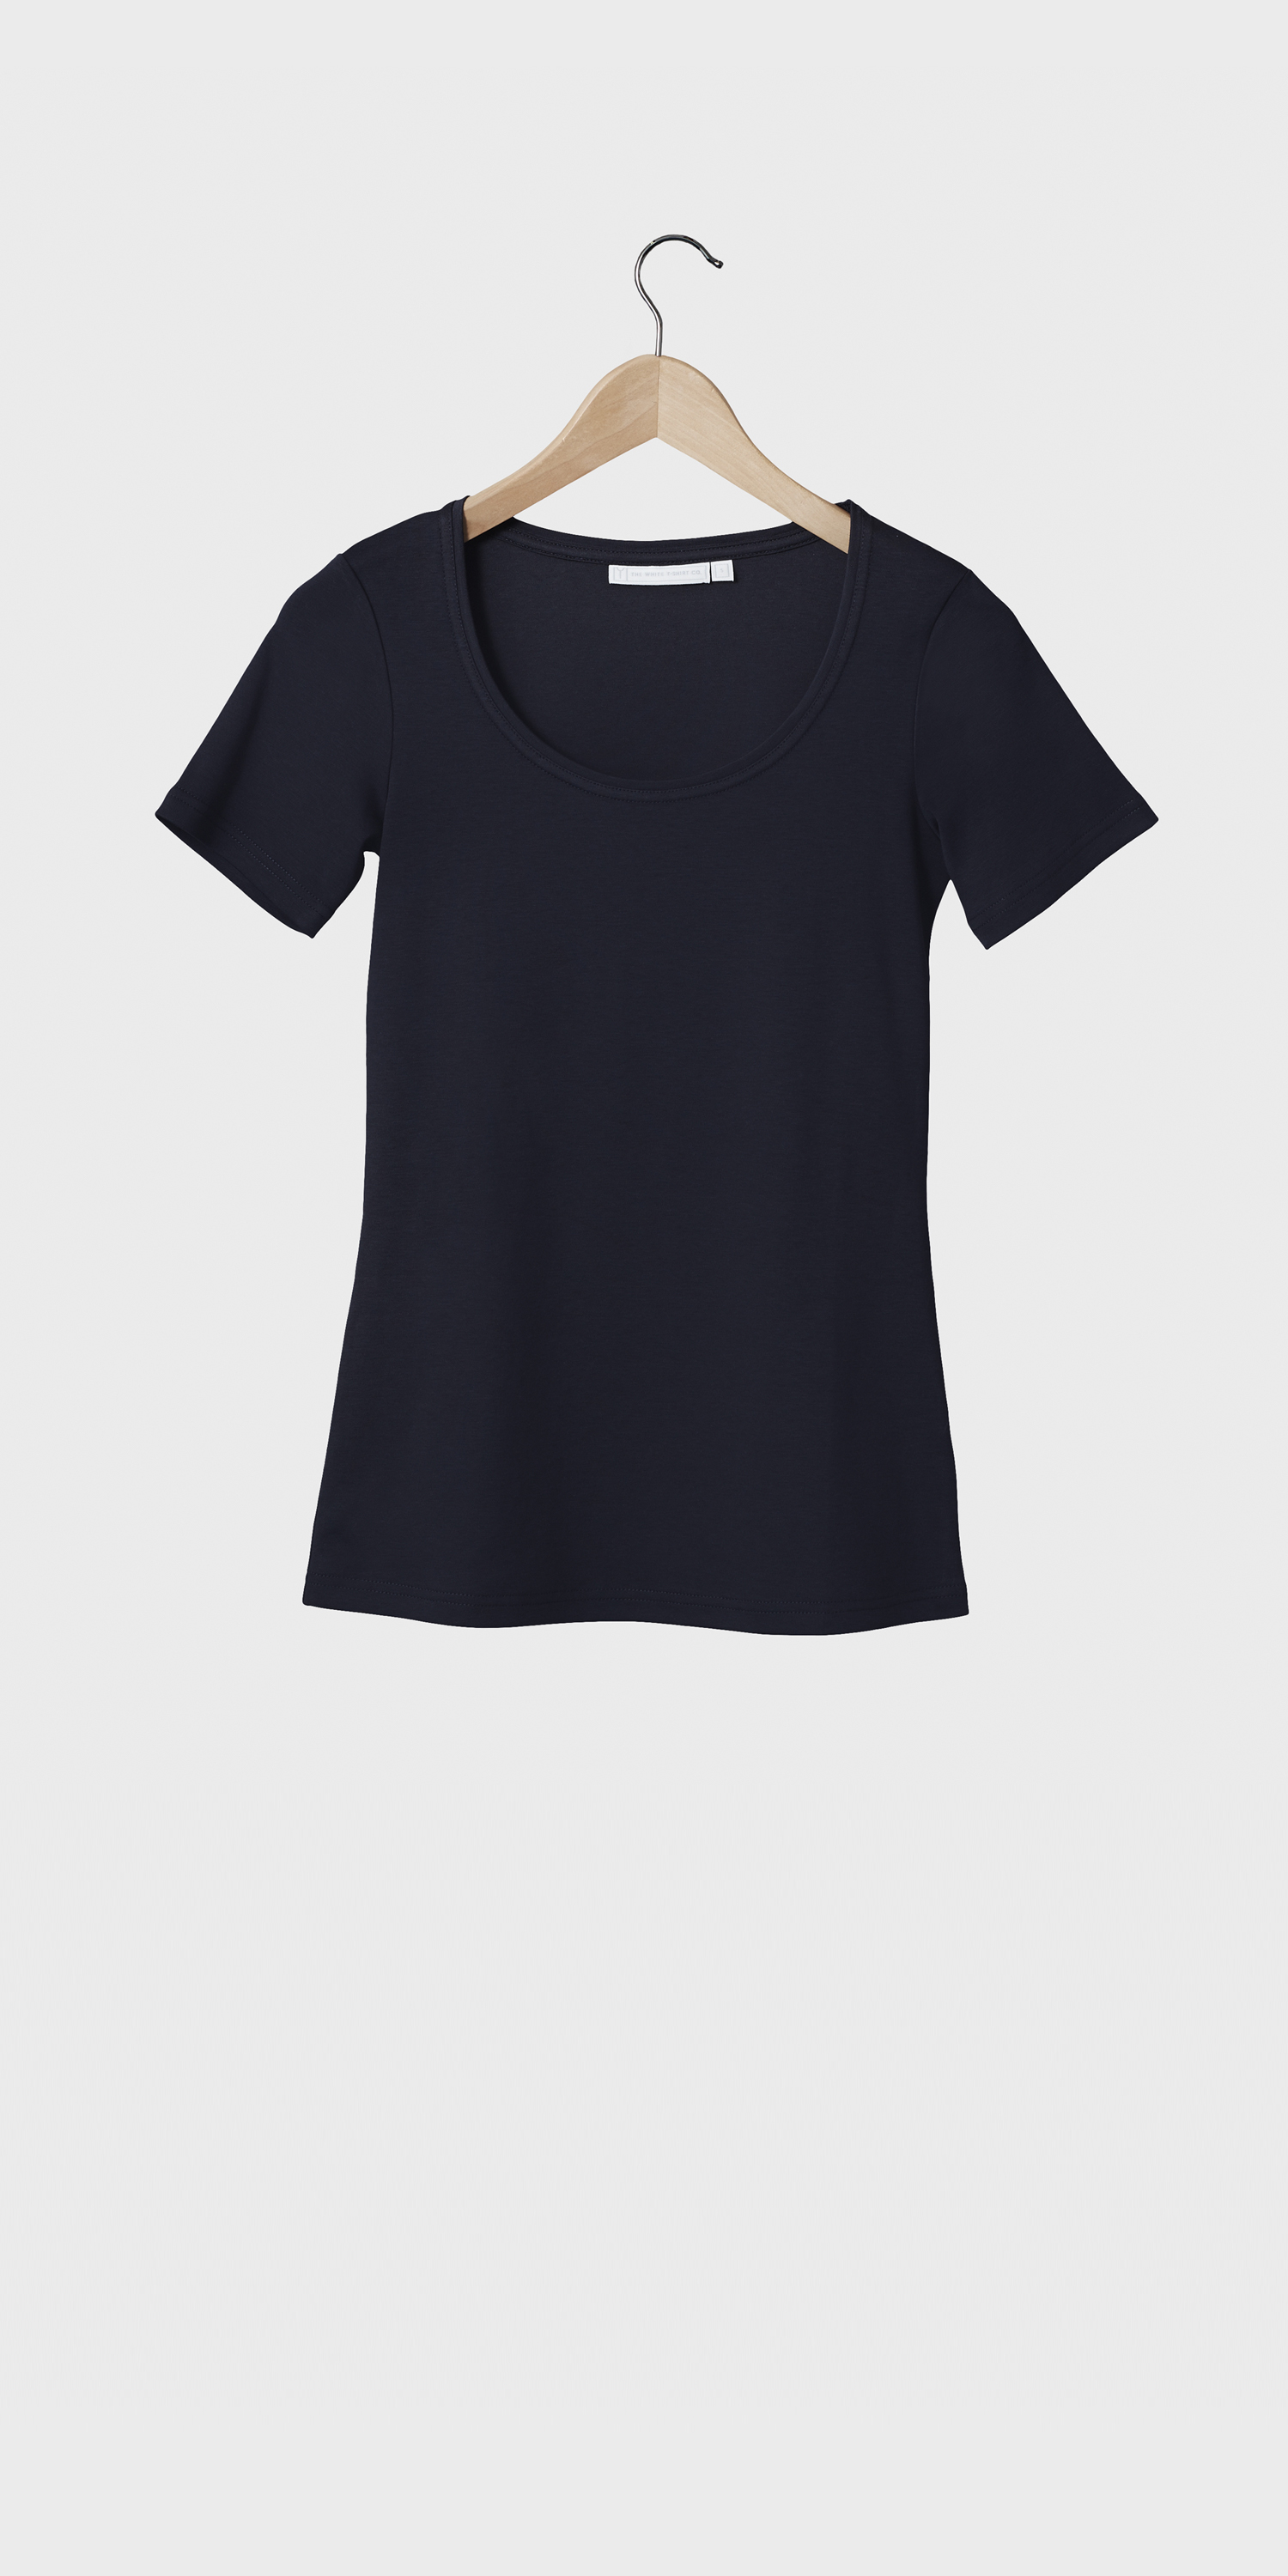 womens navy short sleeve scoop neck t-shirt